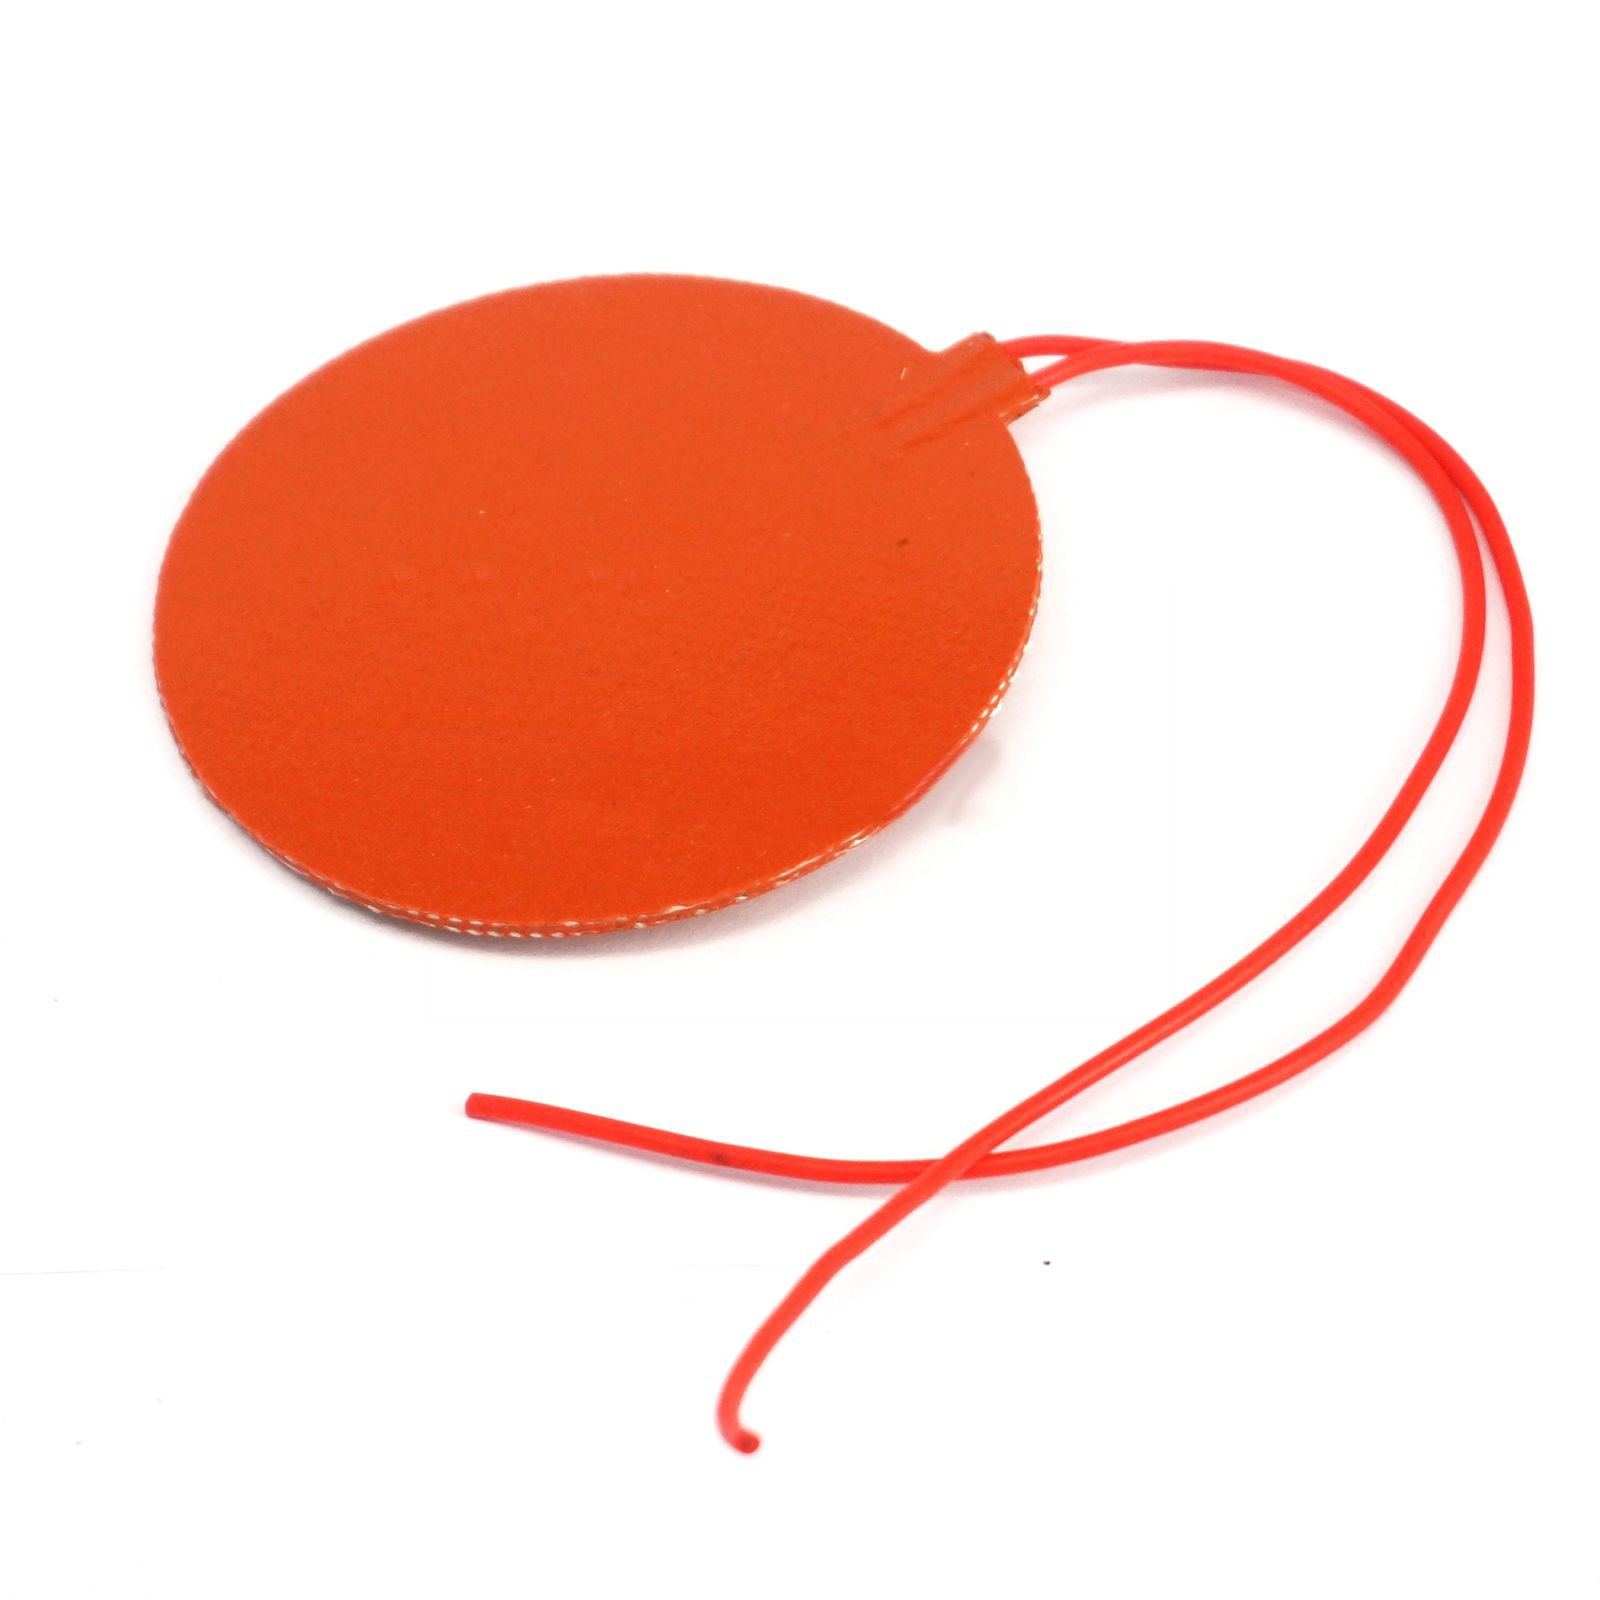 12V 15W Silicone Rubber Heater Pad For 3D Printer Heated Bed Heating Mat 80mm Home Garden Supplies